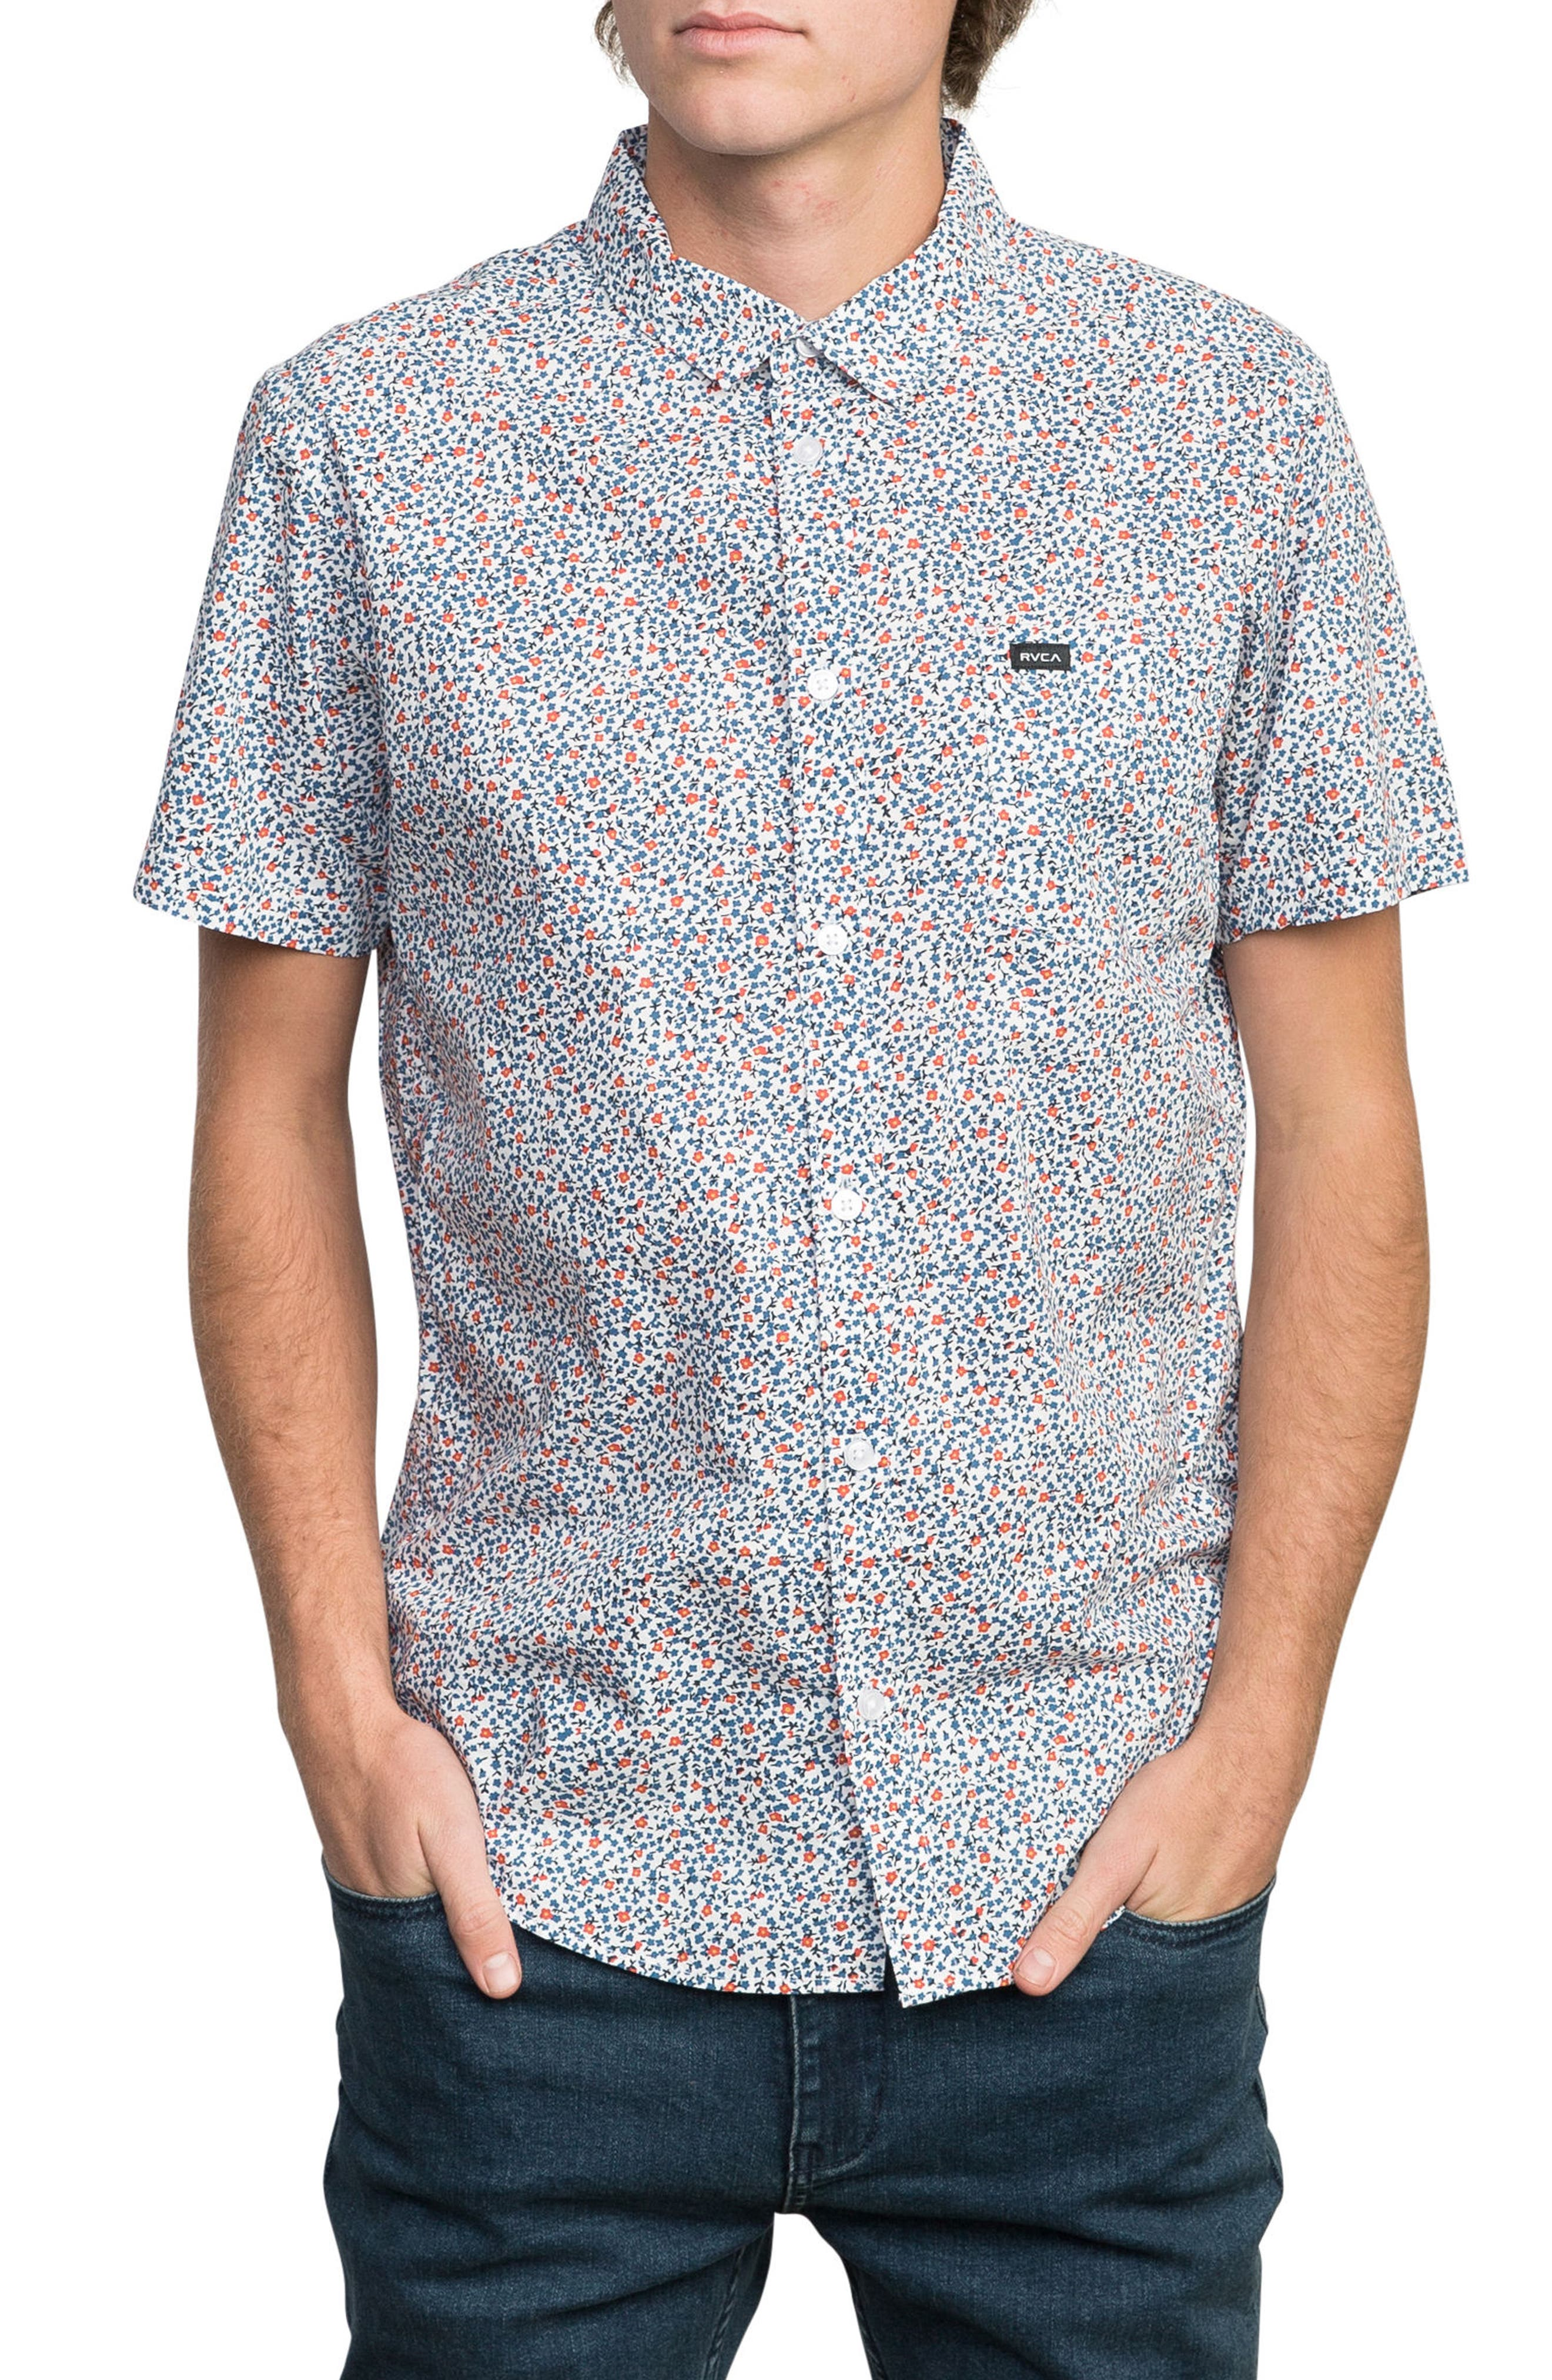 Happy Thoughts Woven Shirt,                         Main,                         color, White